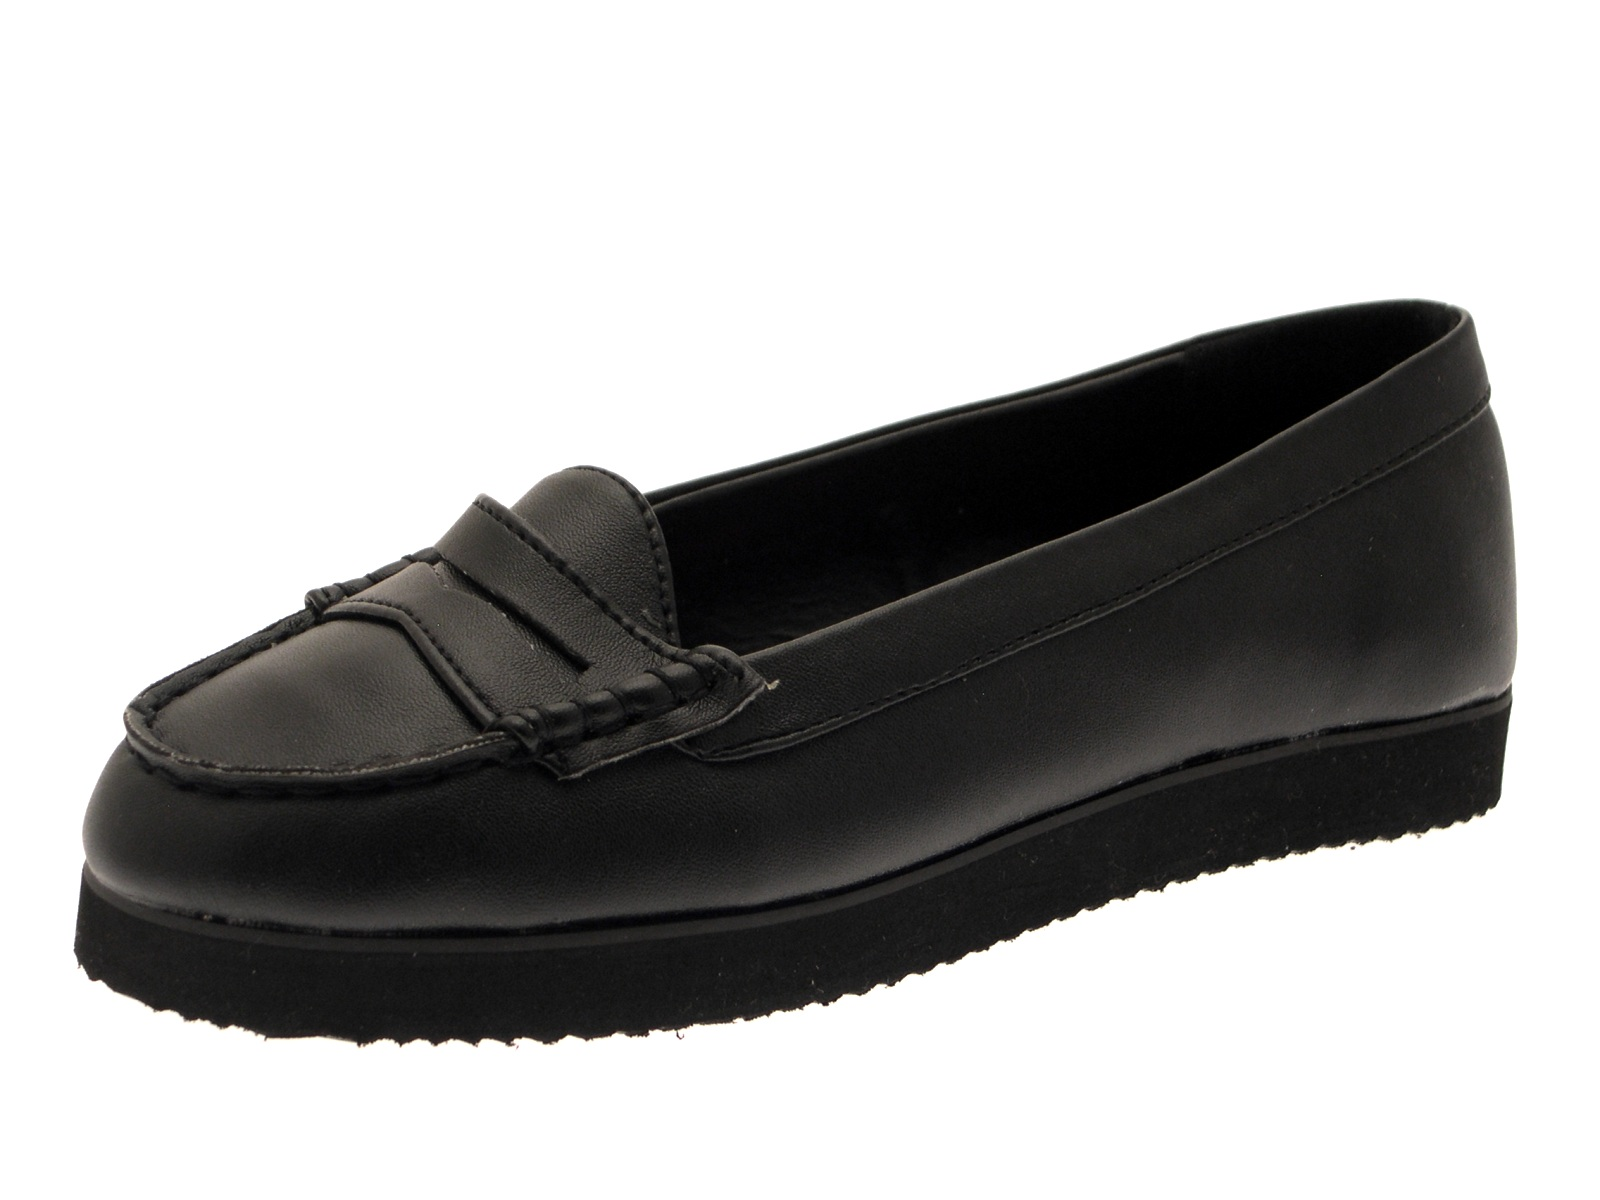 No Slip Work Shoes For Kids